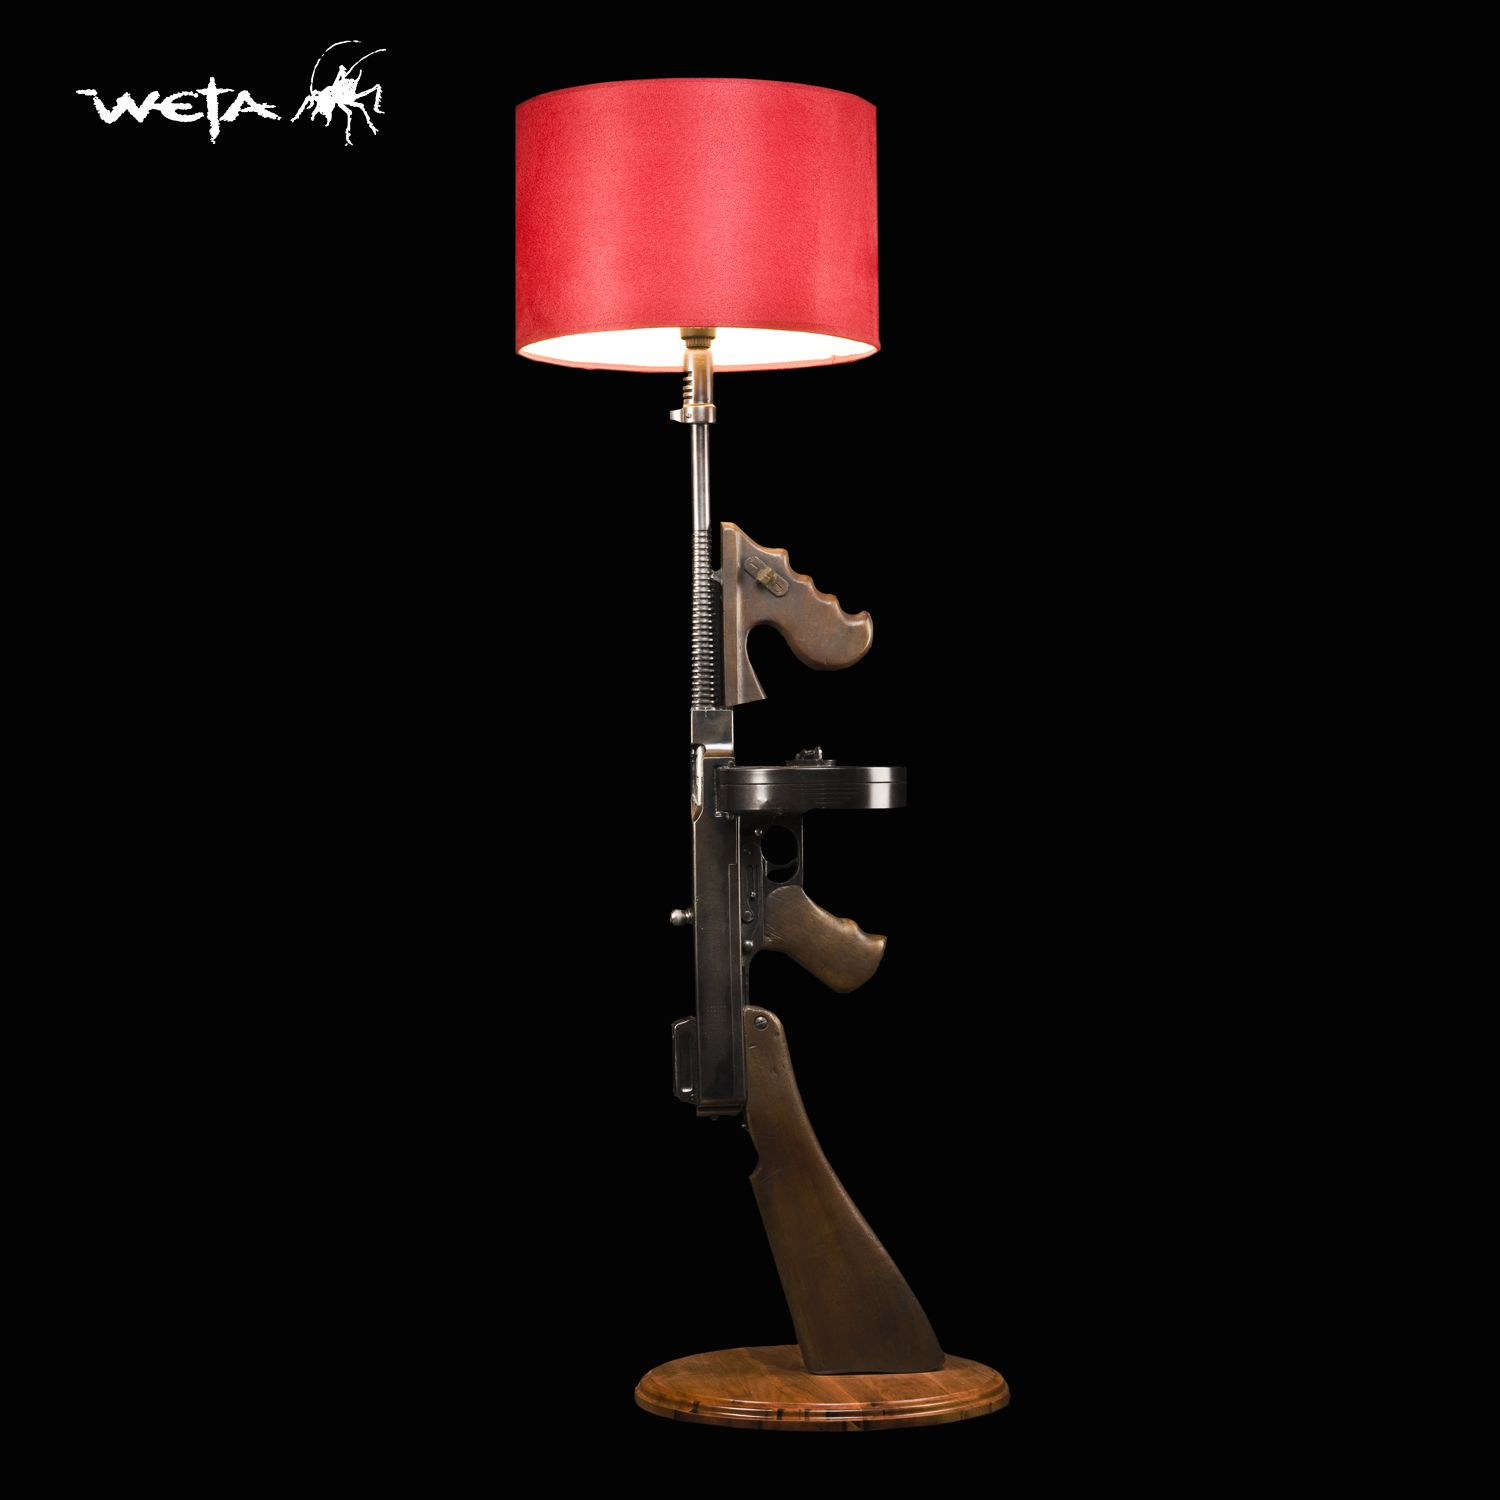 TOMMY GUN LAMP FOR THE MAN CAVE!